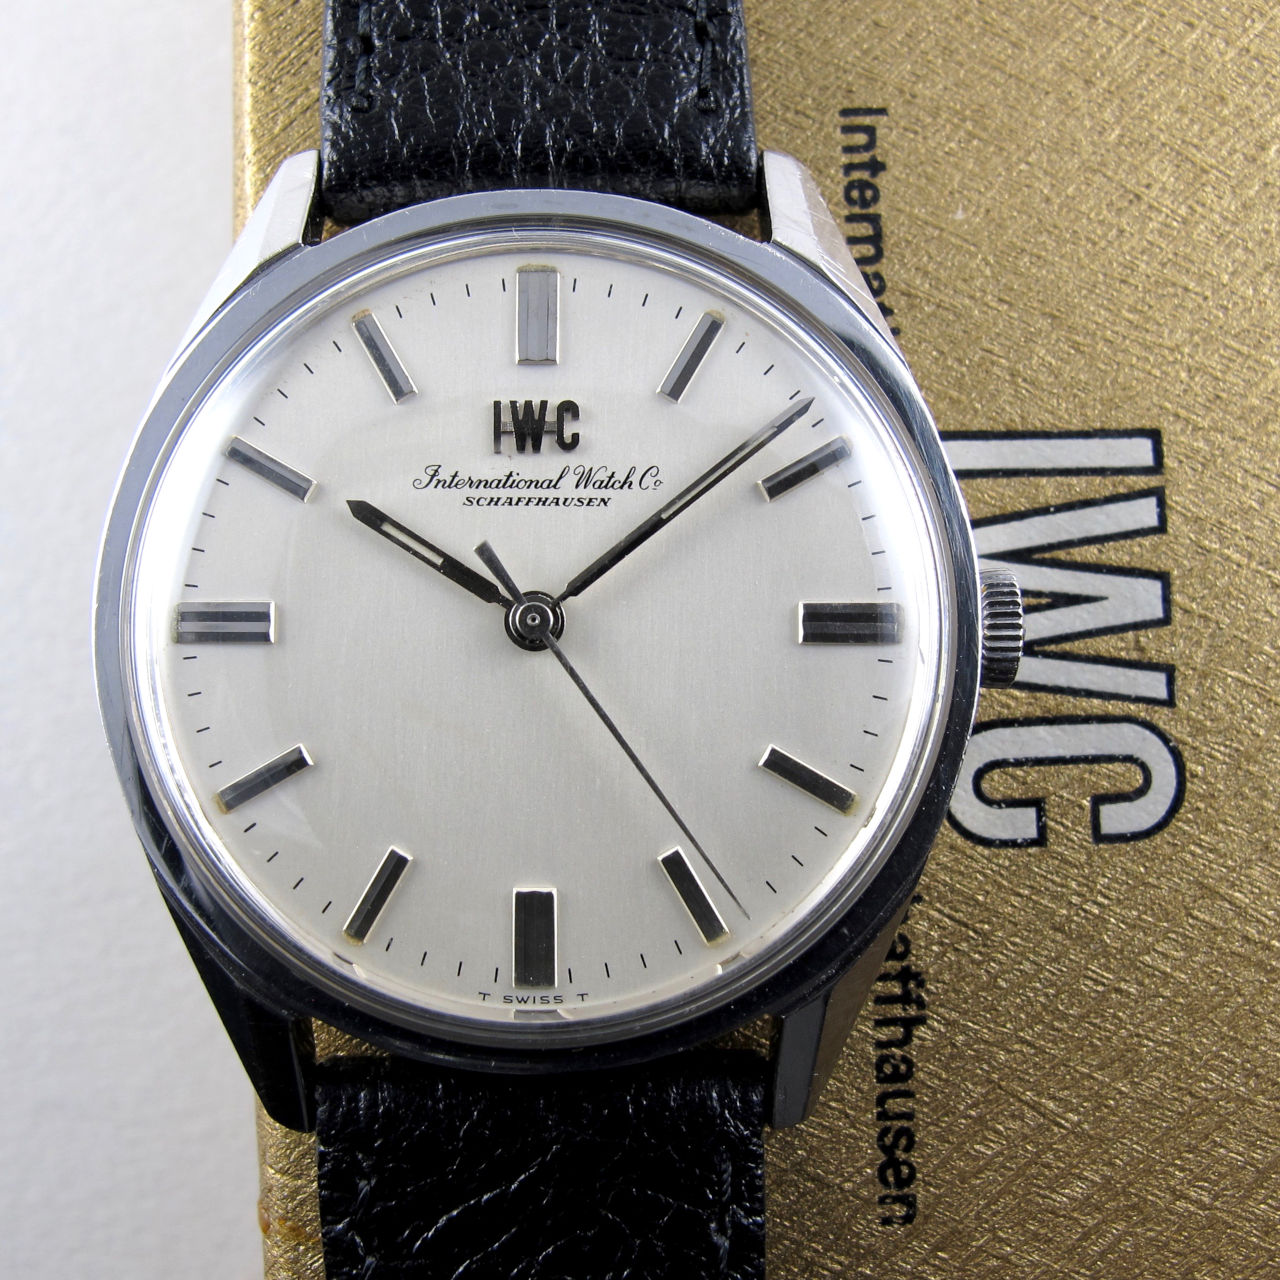 International Watch Company Ref. R810 steel vintage wristwatch, circa 1966